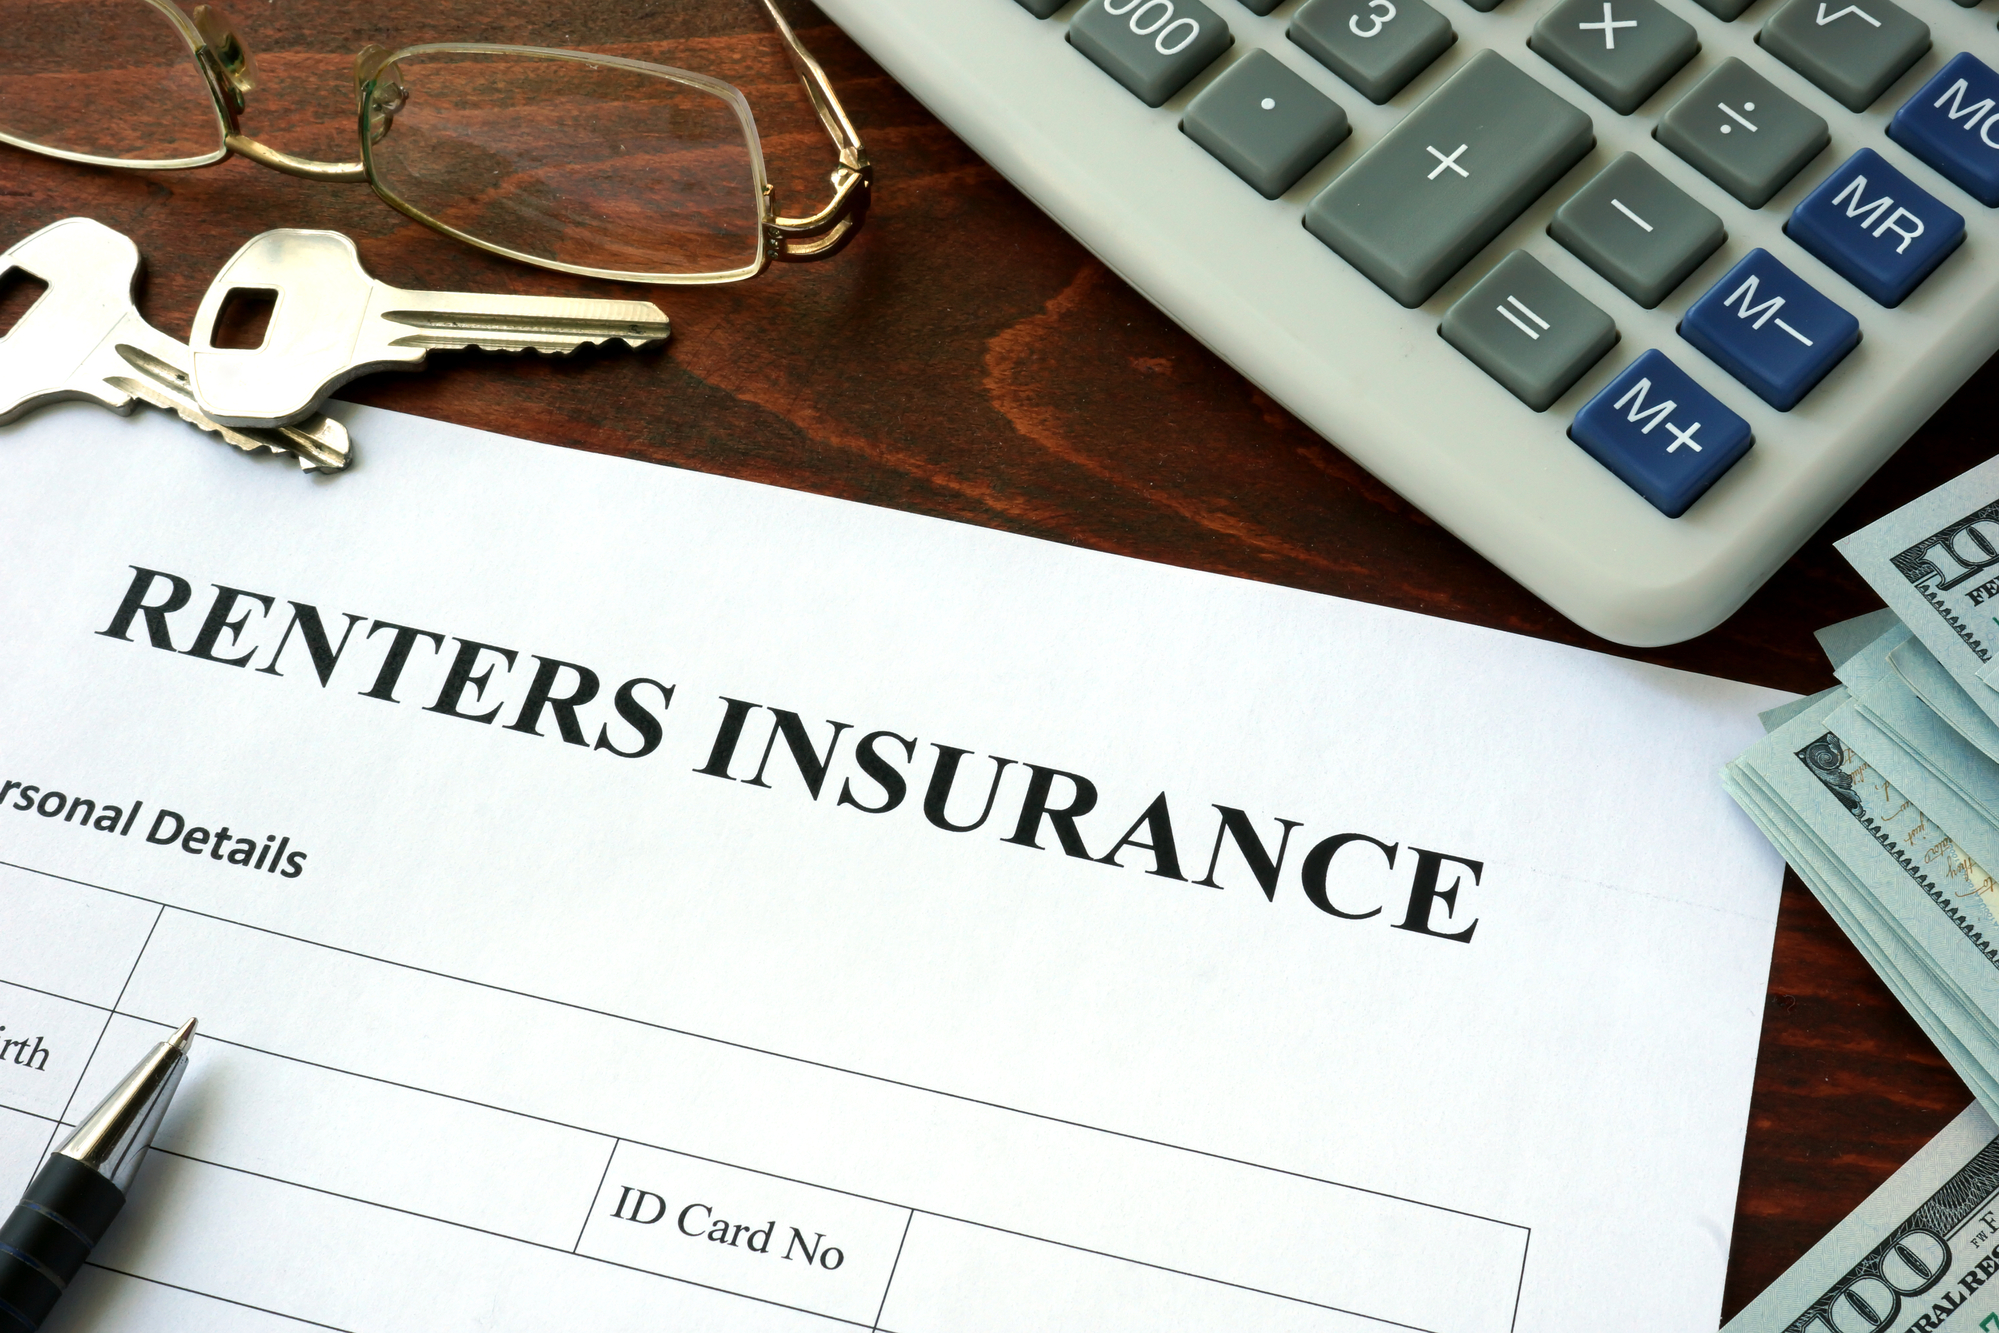 Renters insurance form and dollars on the table